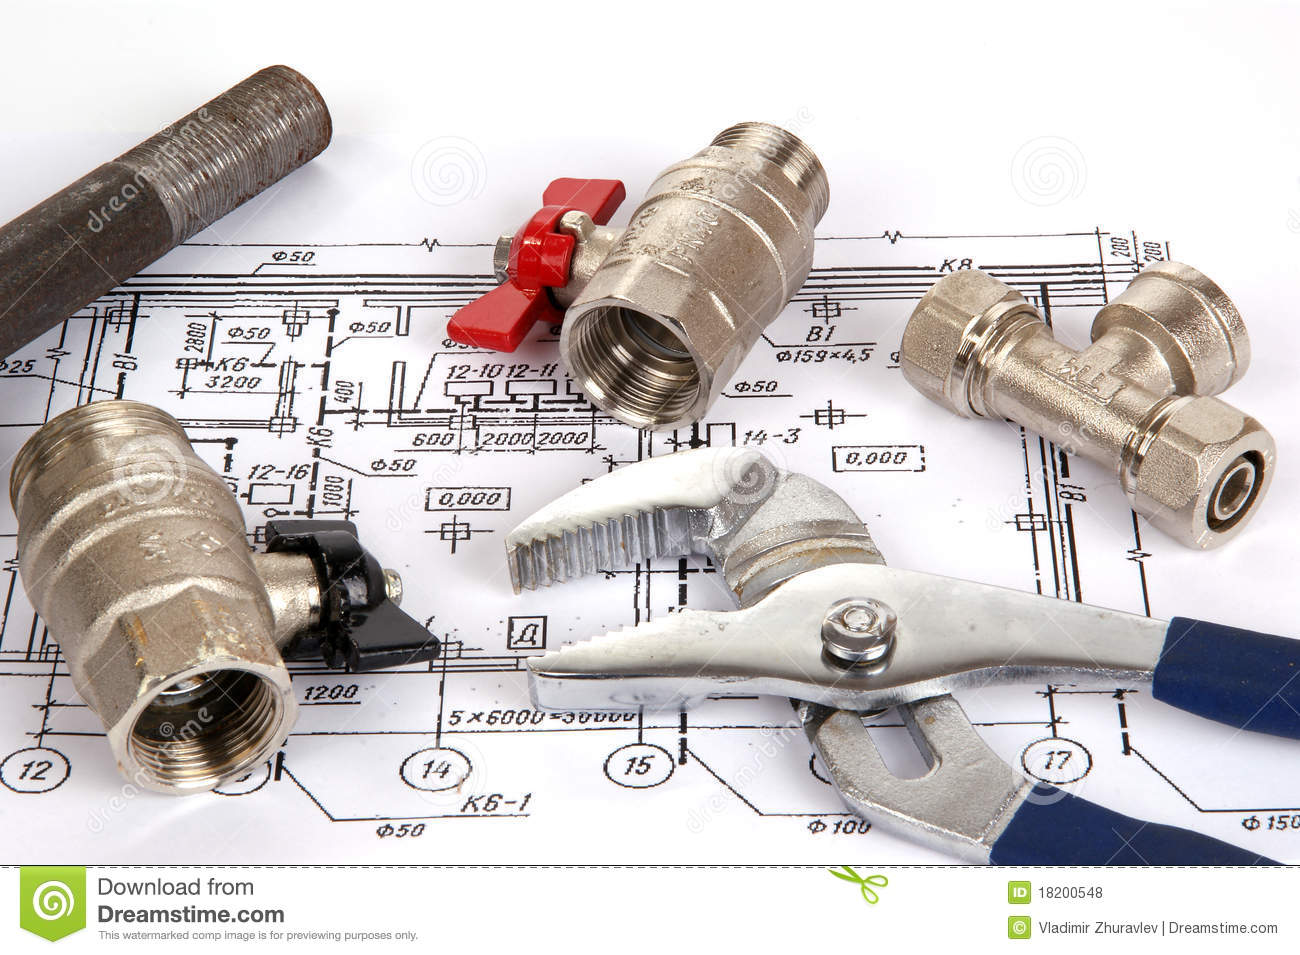 About a professional commercial plumbing inc a professional commercial plumbing inc is a full service commercialindustrial plumbing company providing highly trained and skilled personnel on malvernweather Choice Image